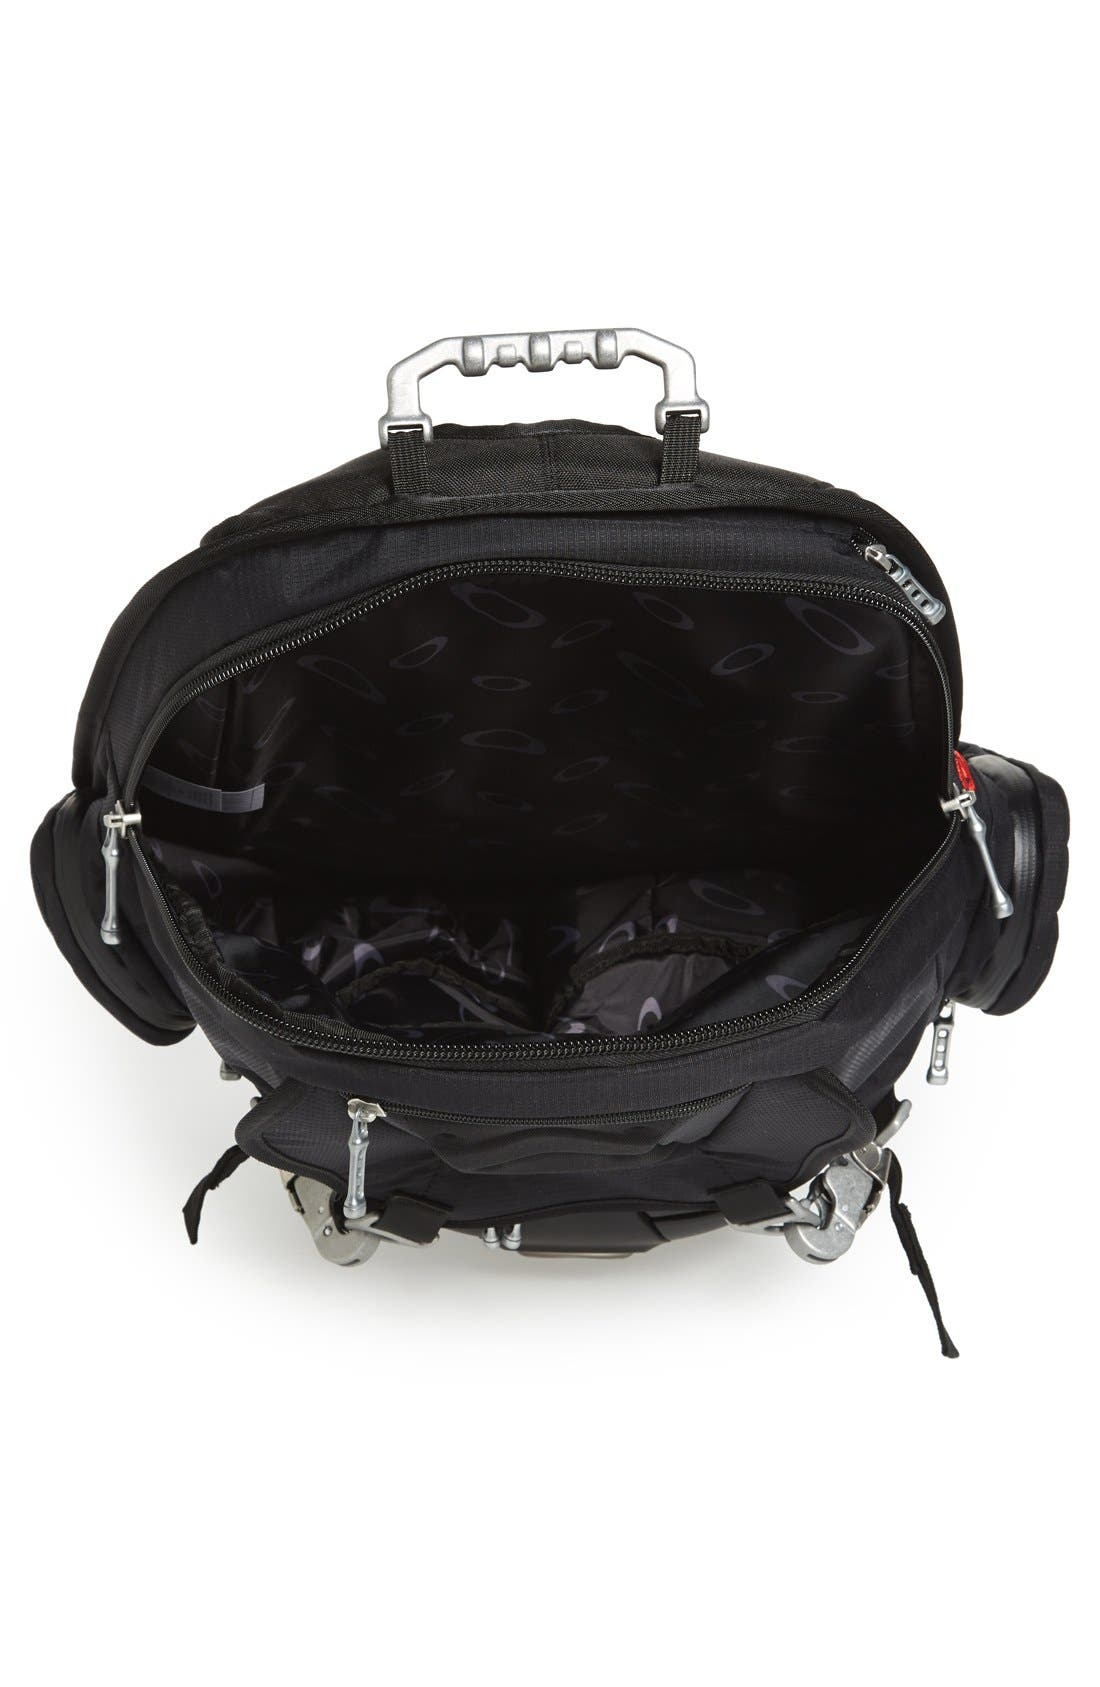 'Lunch Box' Cooler Backpack,                             Alternate thumbnail 4, color,                             001